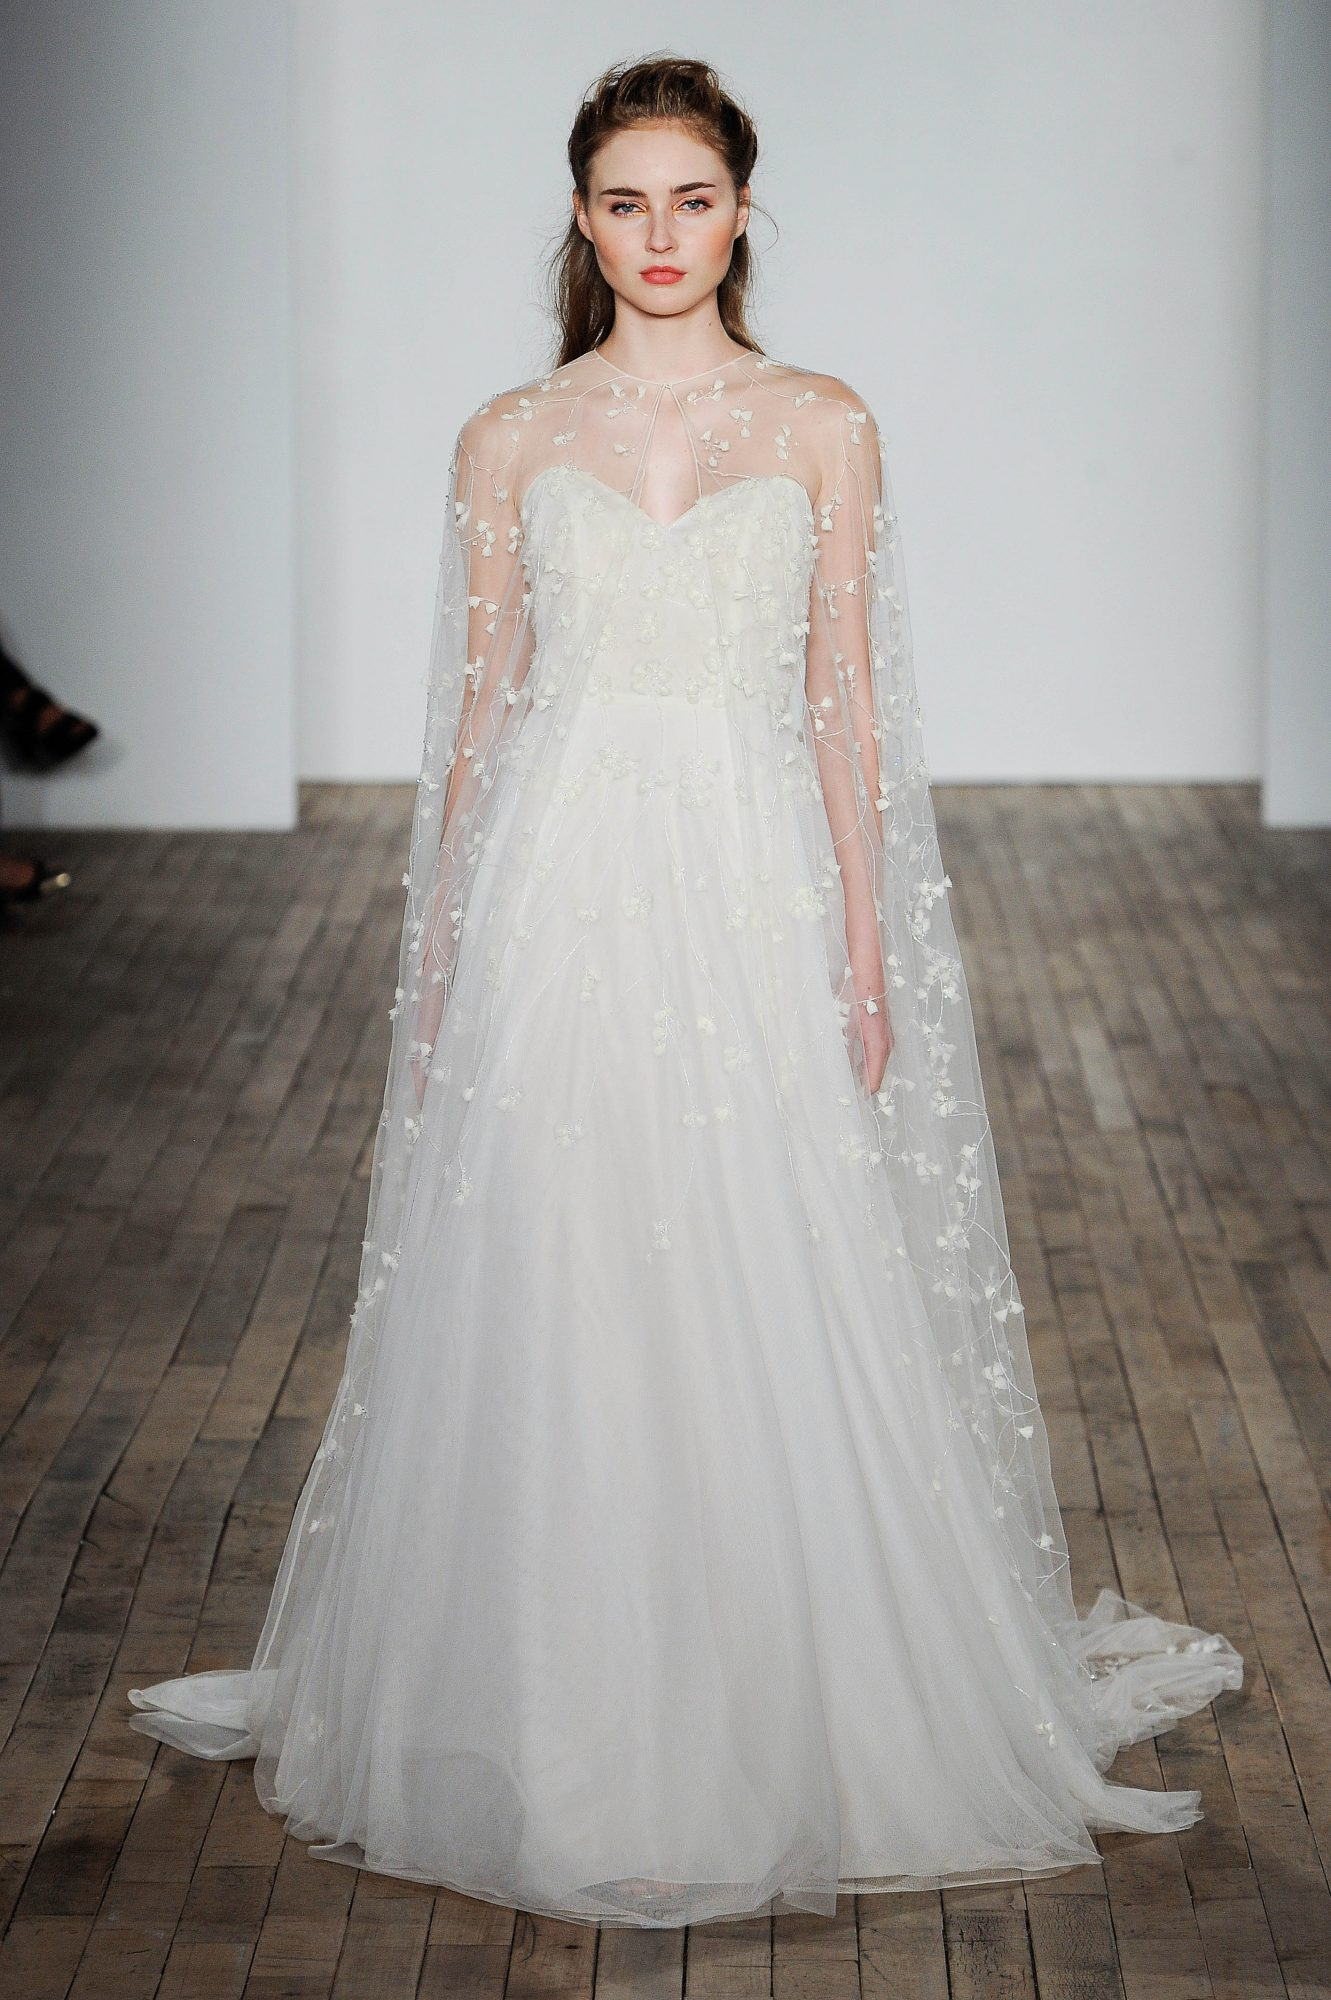 Allison Webb Sweetheart with Sheer Cape Wedding Dress Fall 2018